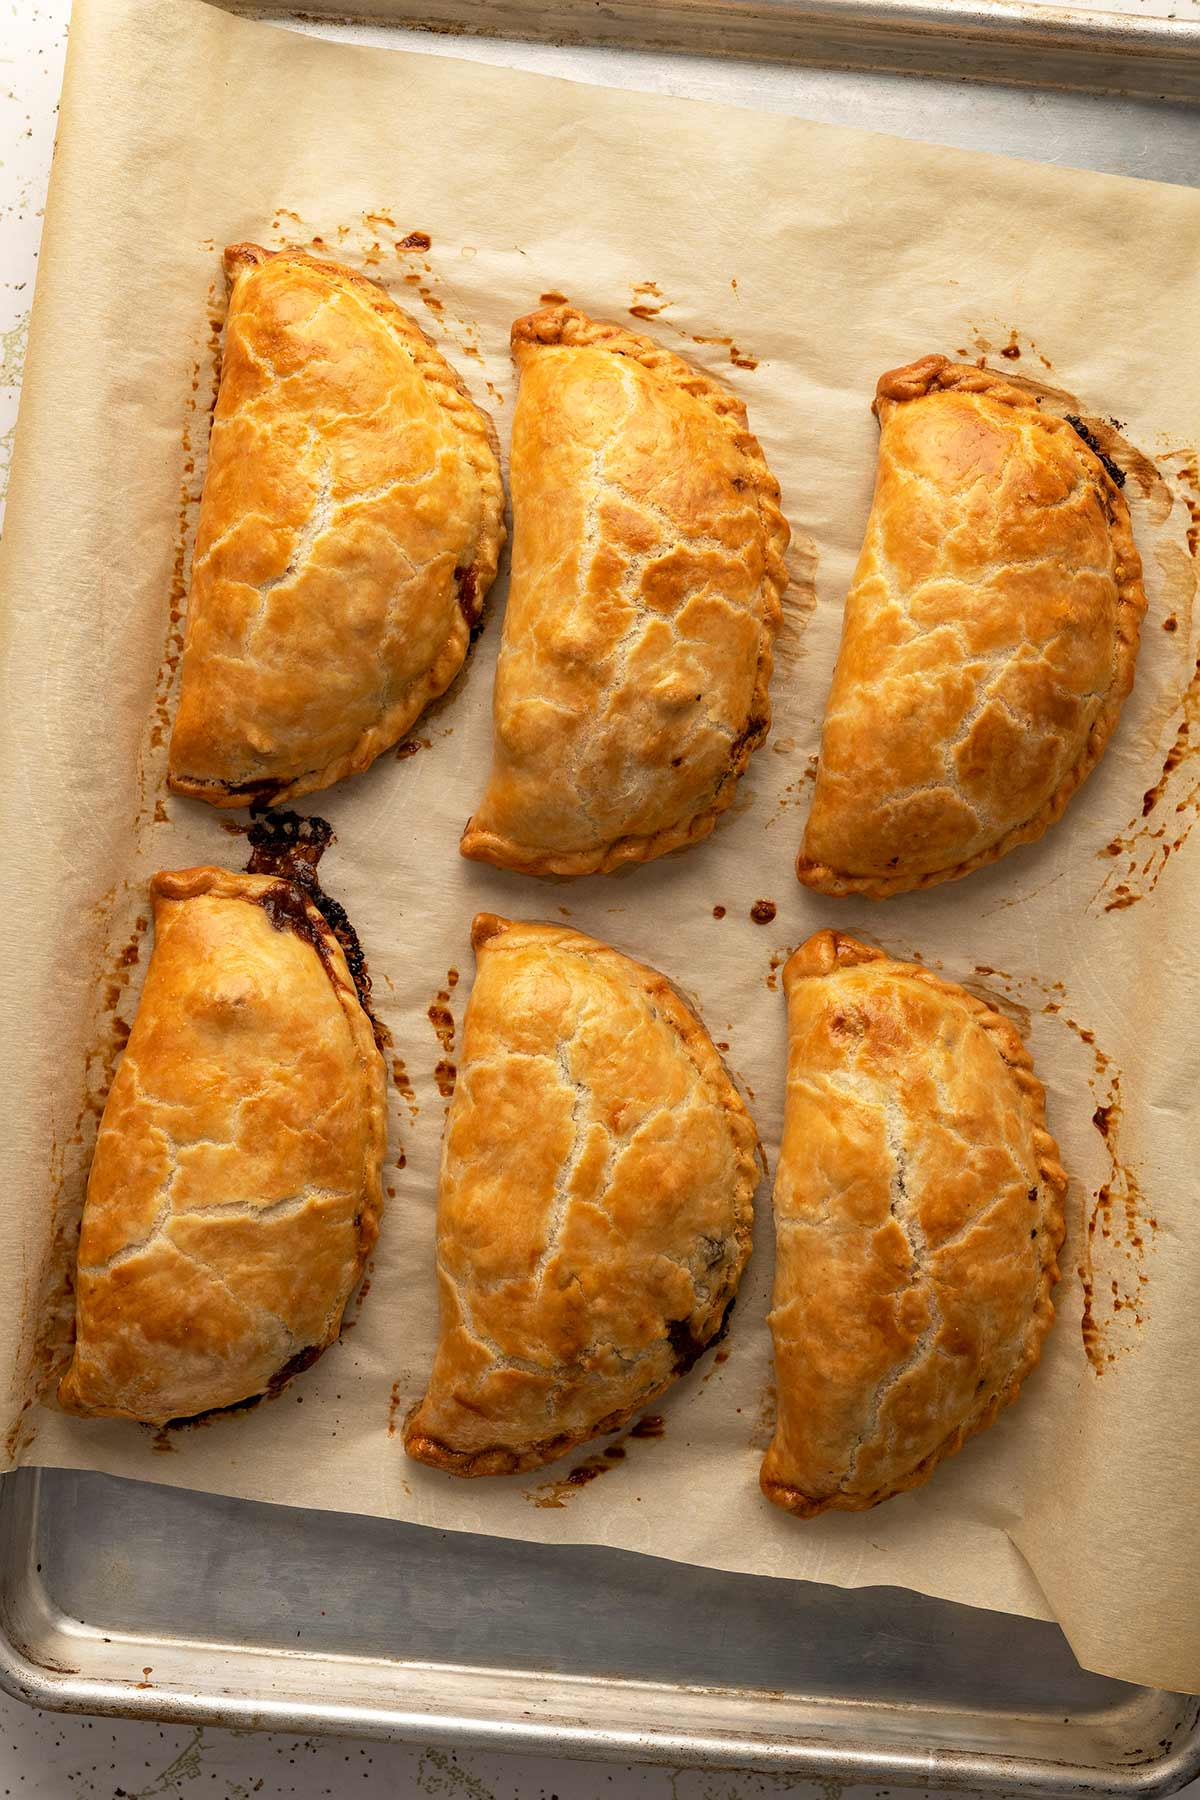 Venison pasties, cooling on a baking sheet